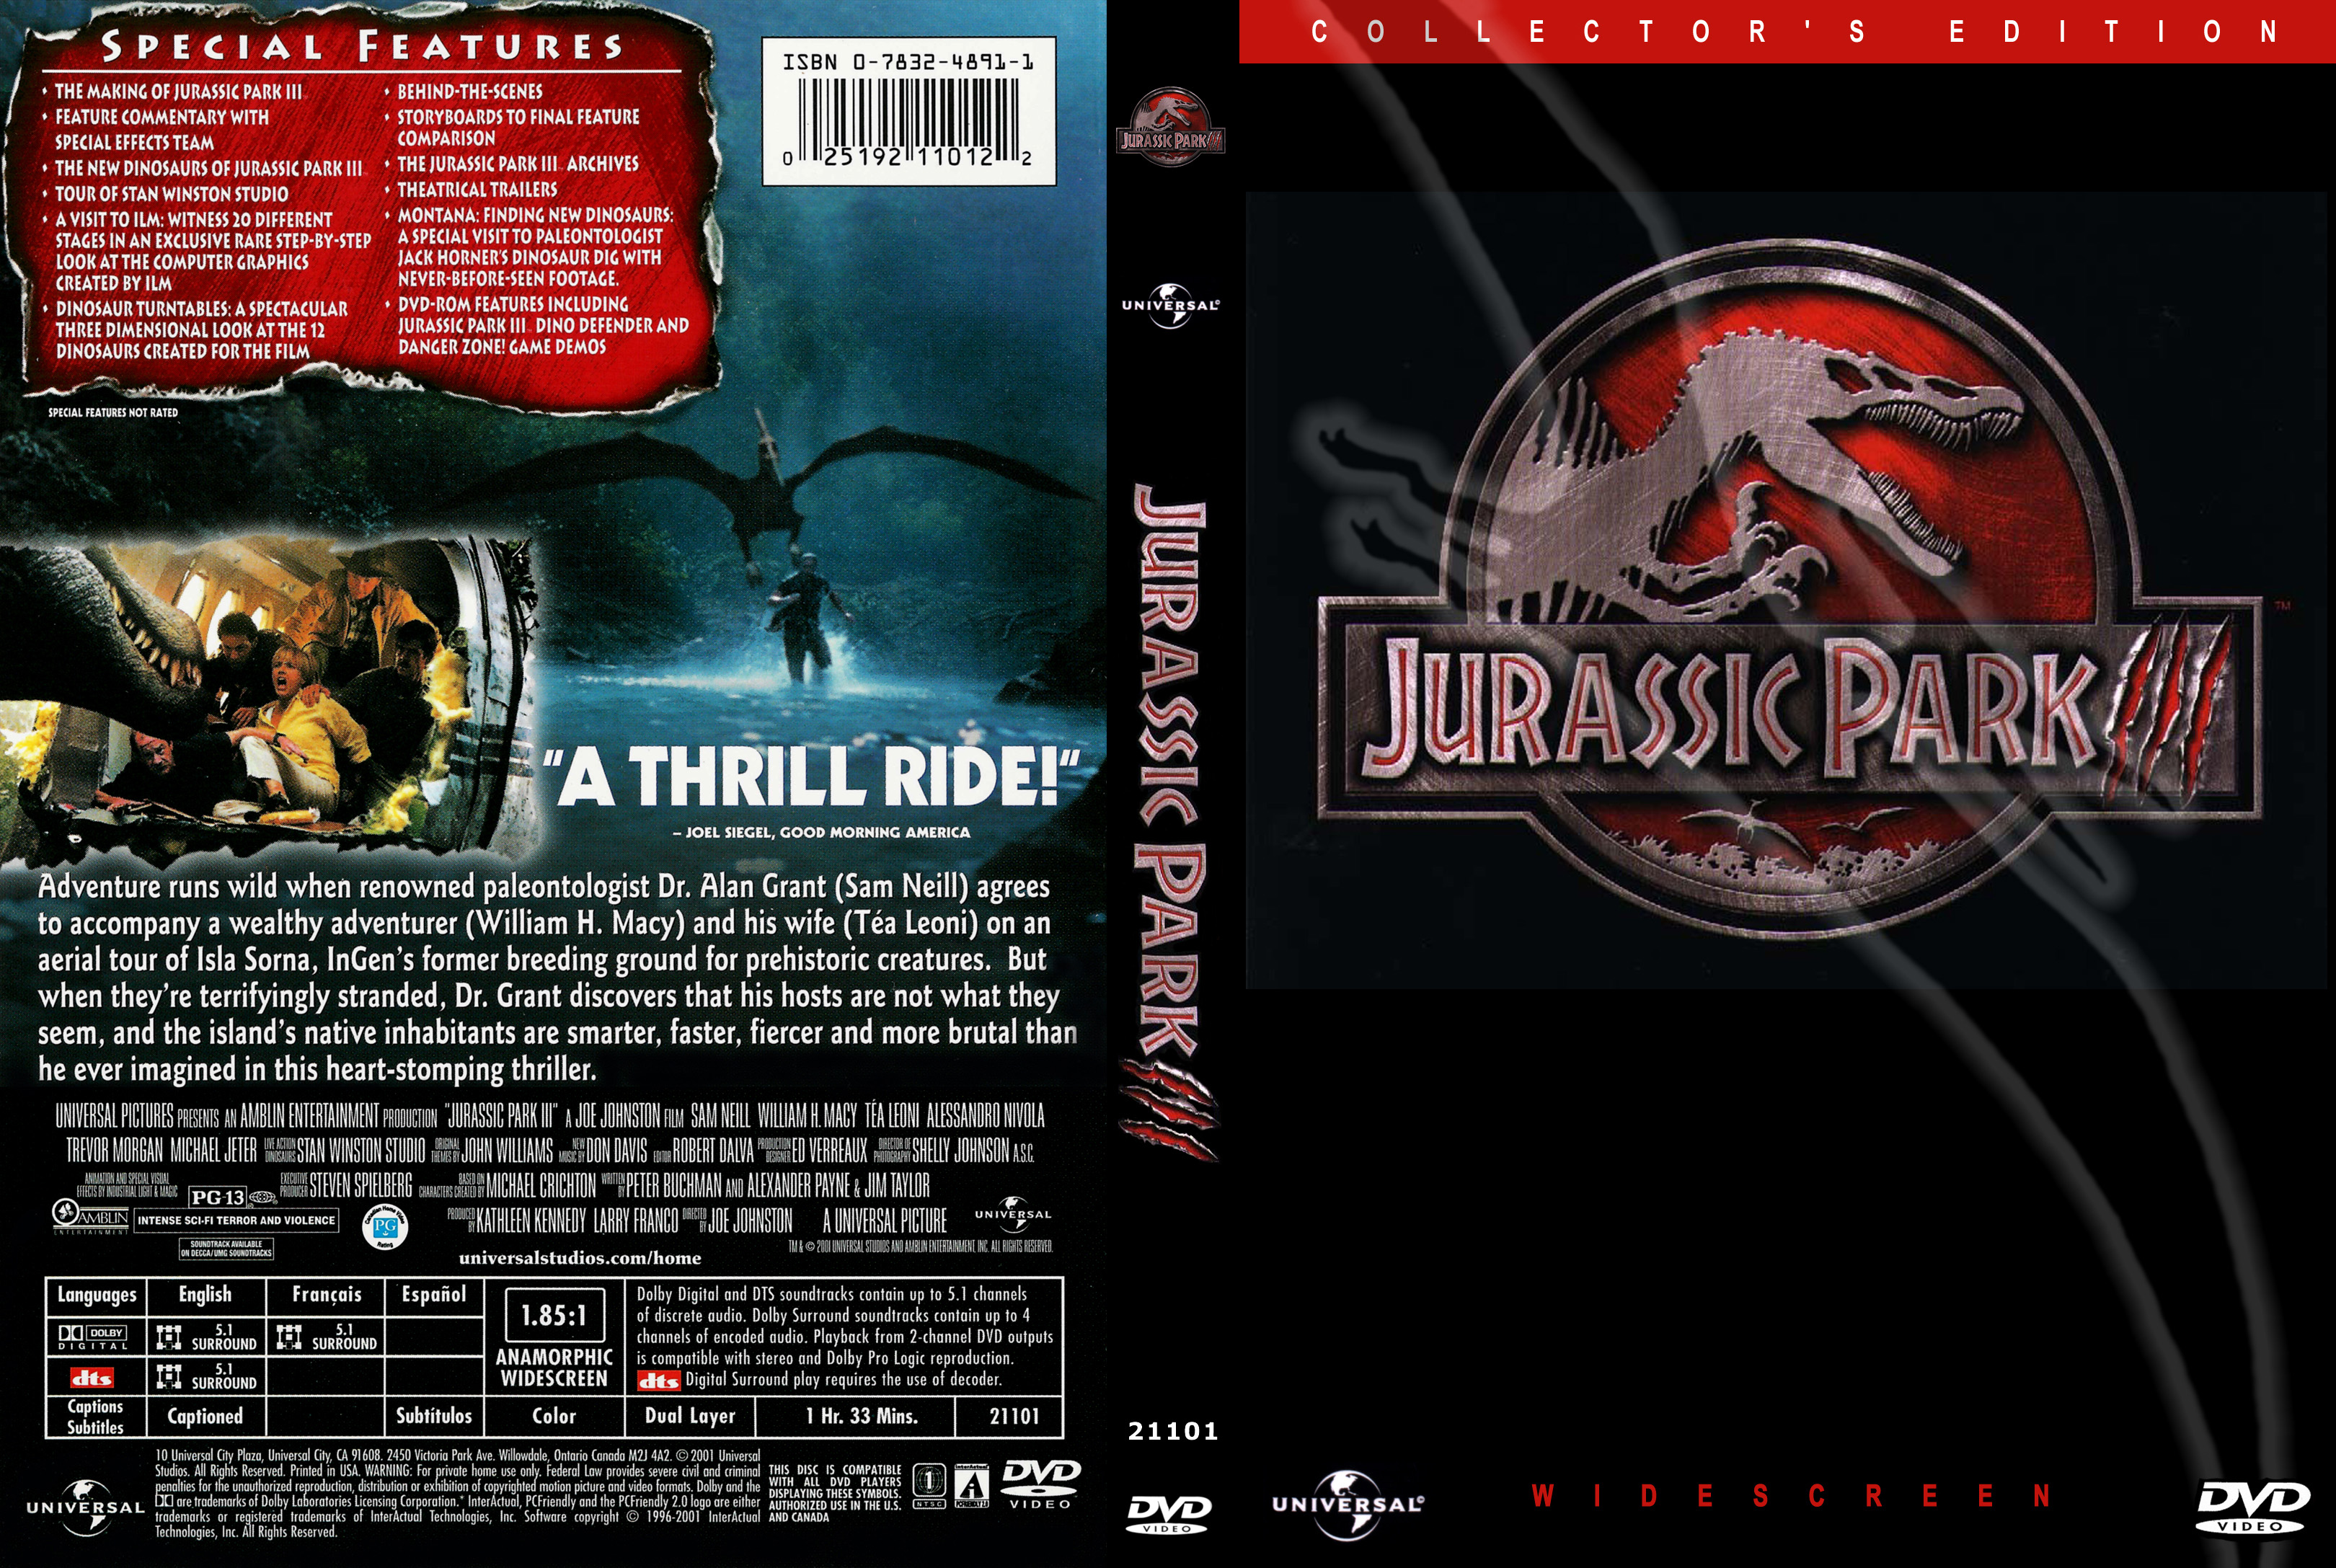 Jurassic Park III | DVD Covers | Cover Century | Over